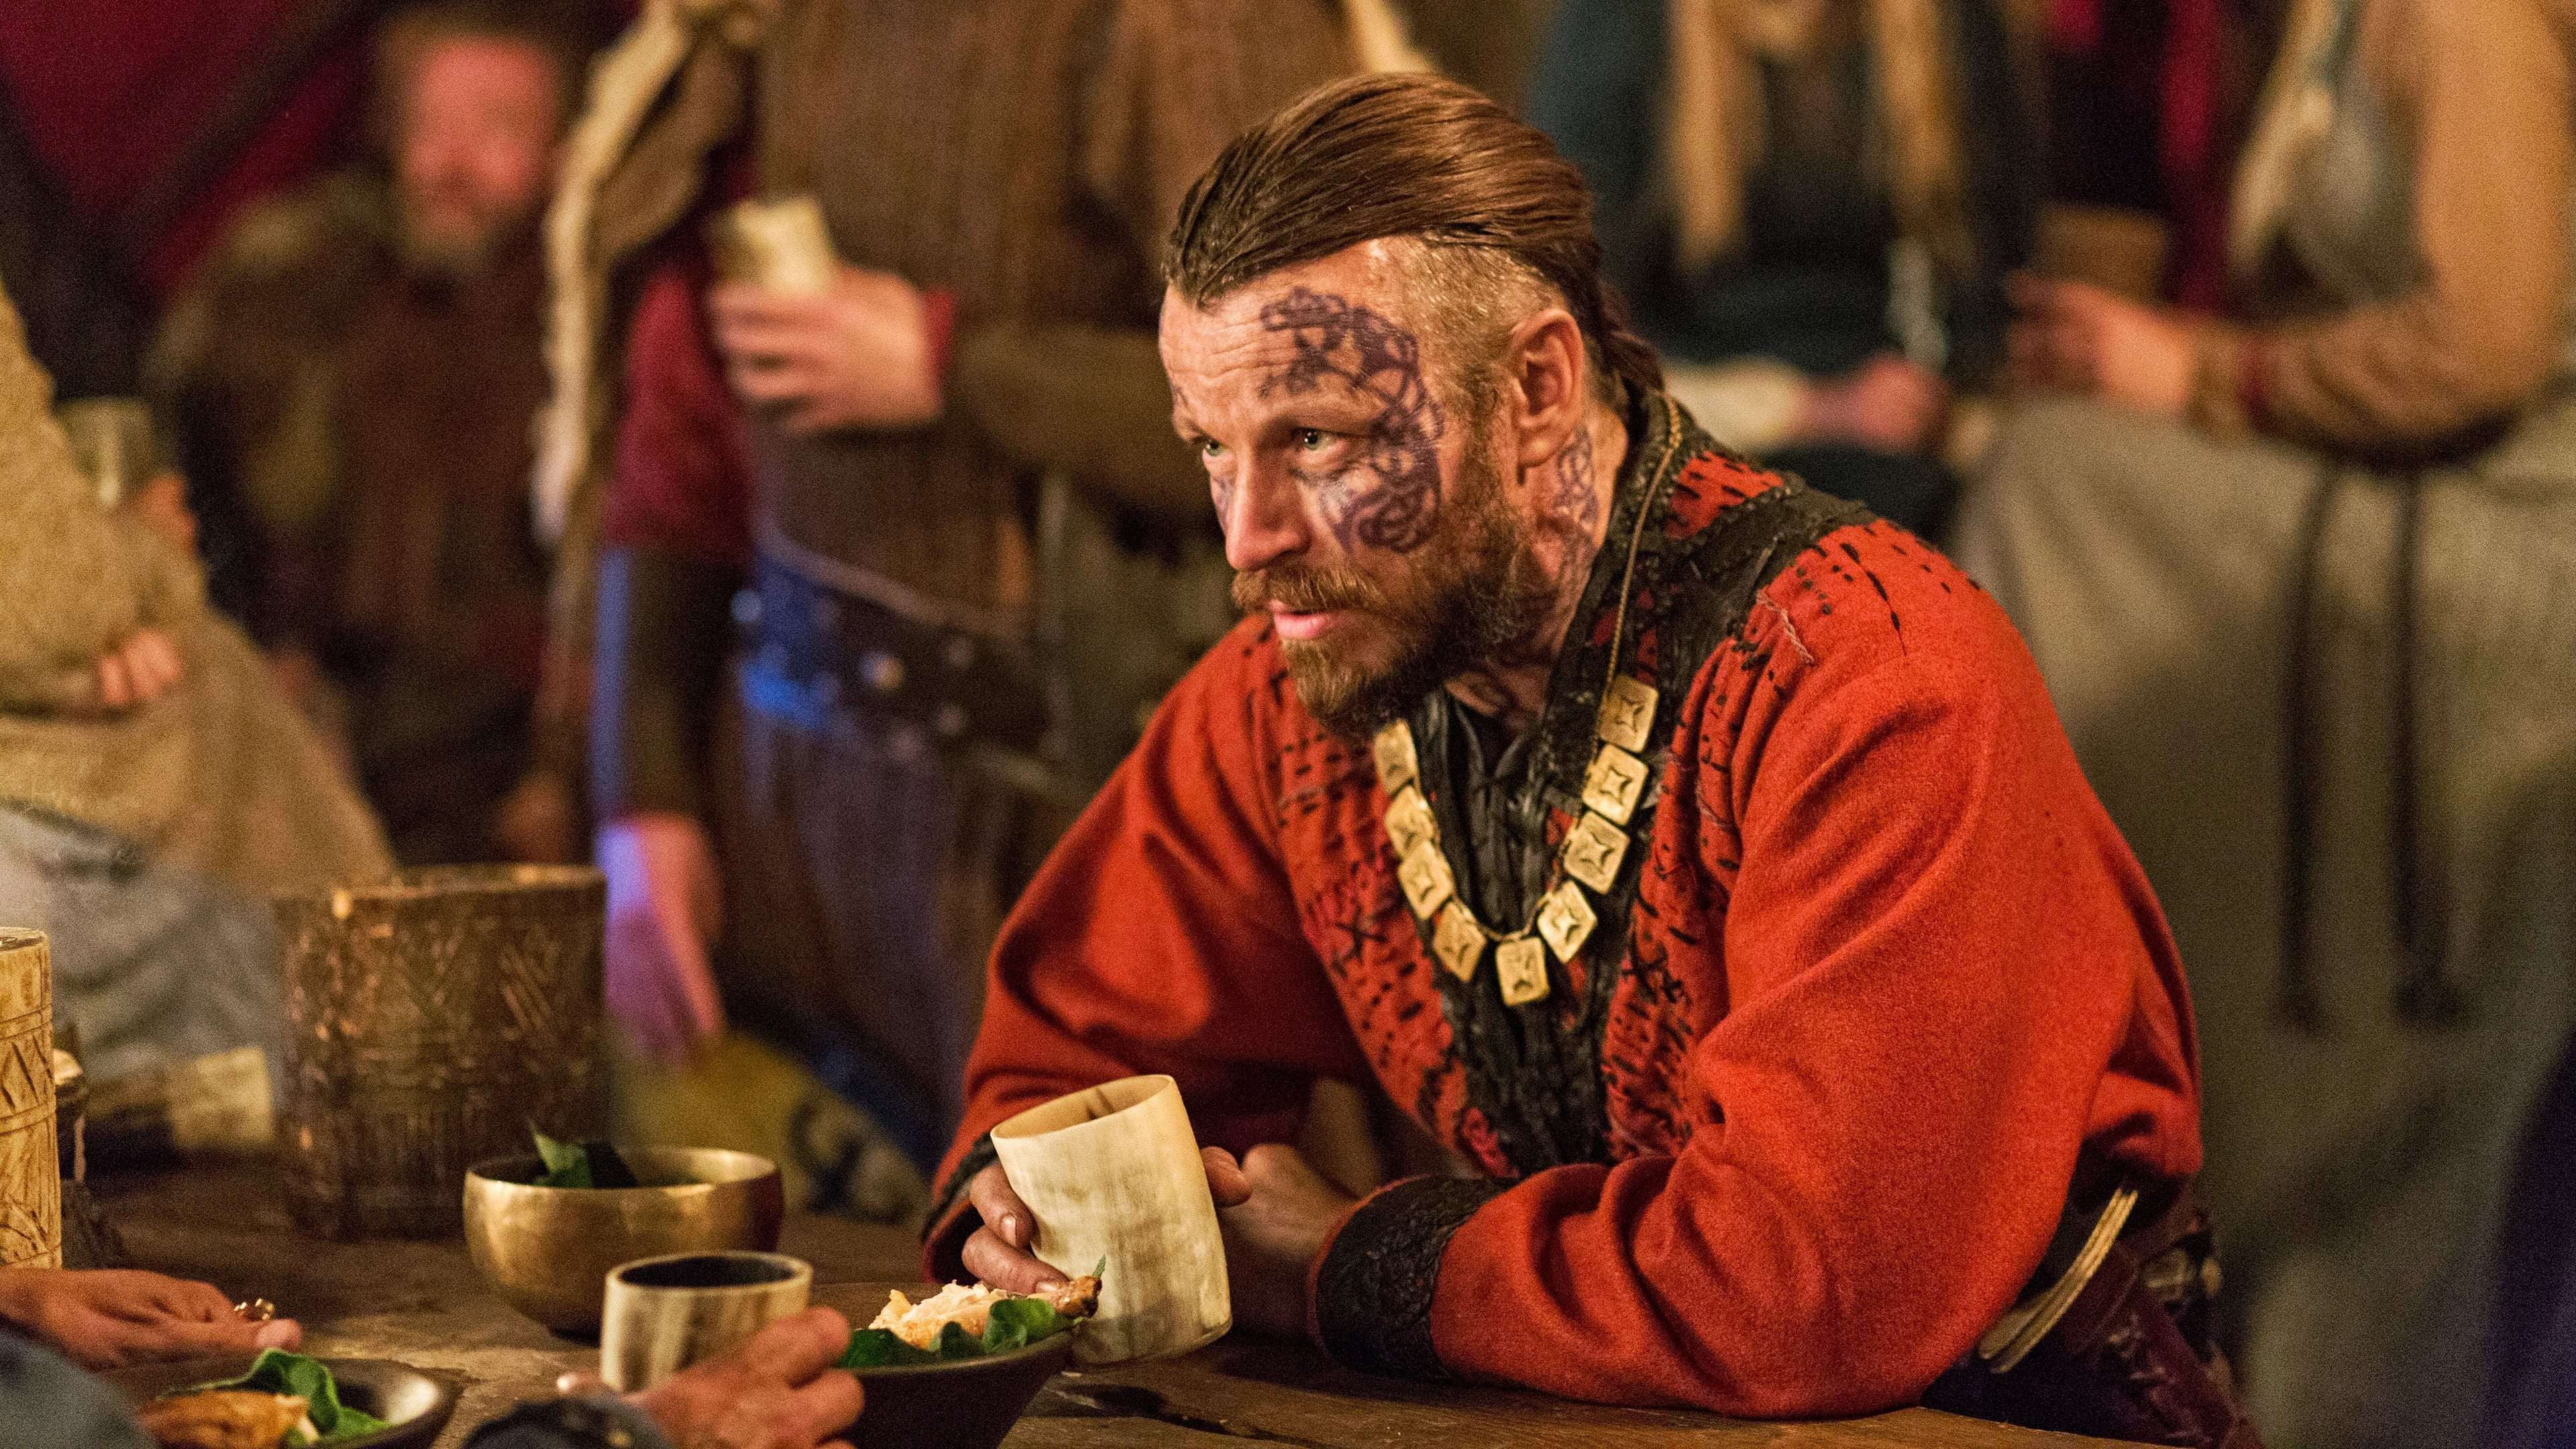 Vikings - Season 4 Episode 5 : Promised